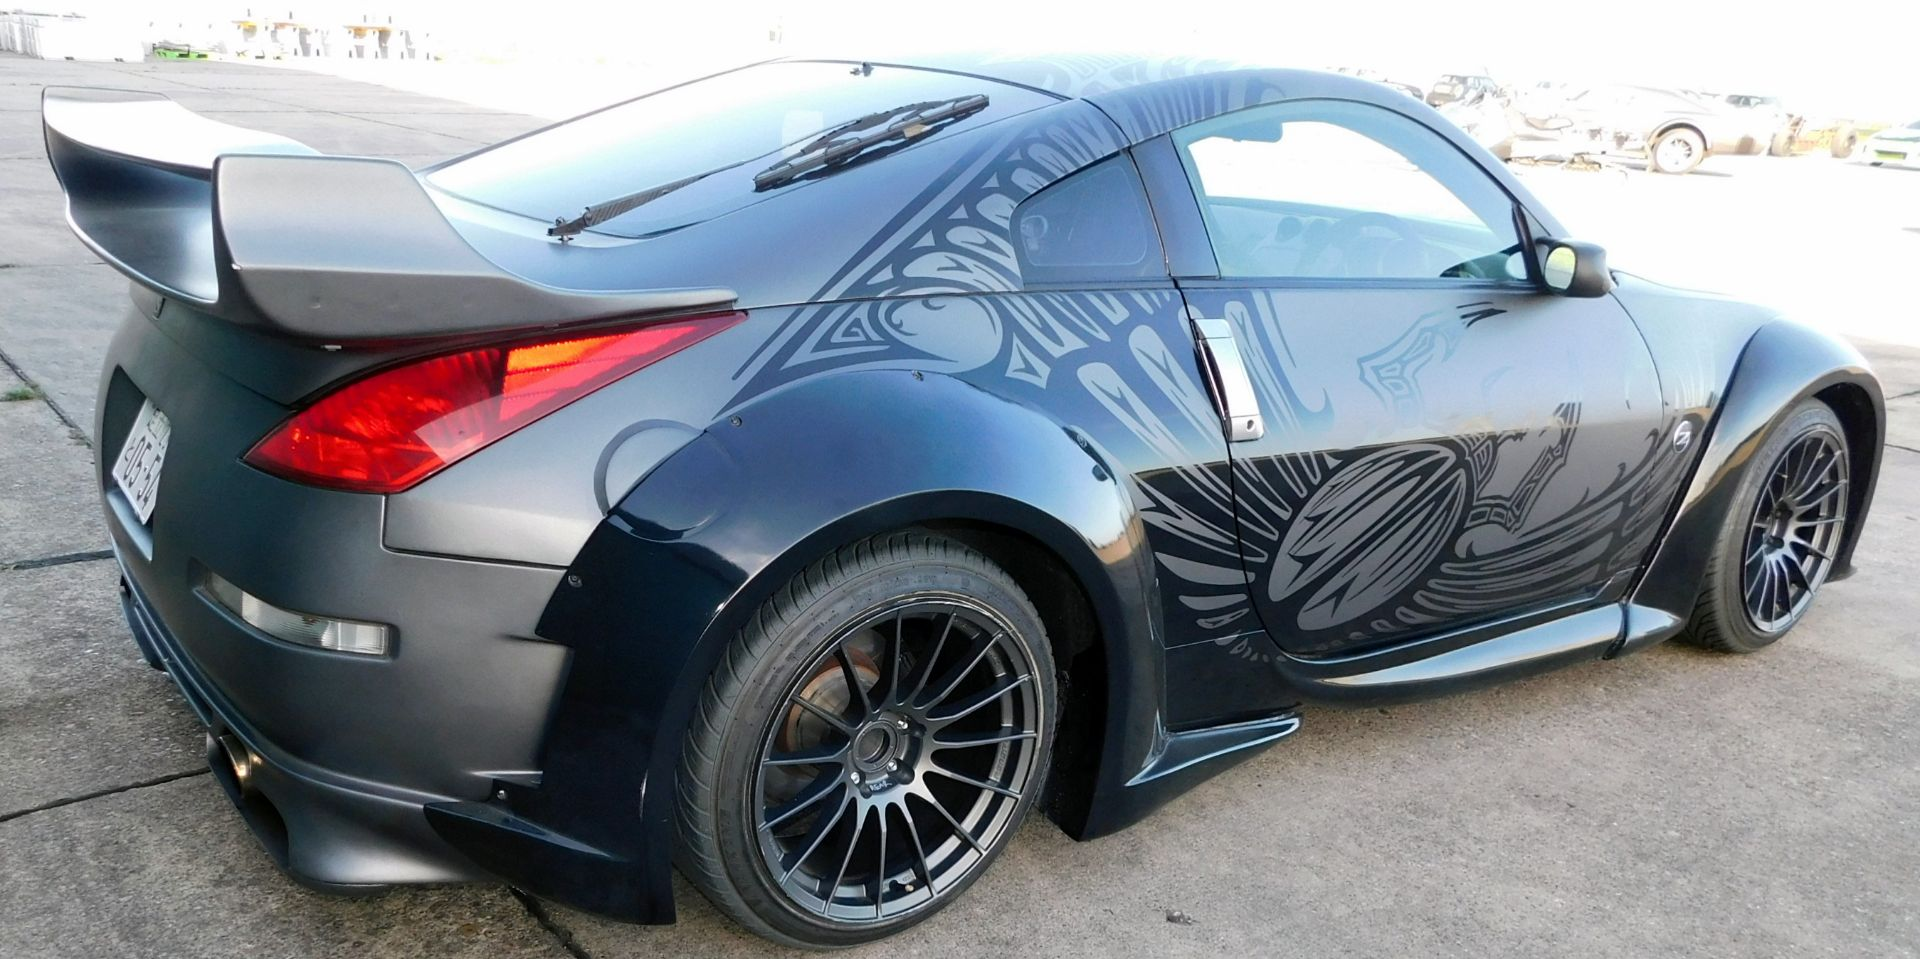 """Nissan 350z 2 door Coupe Original Picture Car From """"Fast & Furious 3""""* ,LS3 V8 6.2 Litre Engine, - Image 7 of 16"""